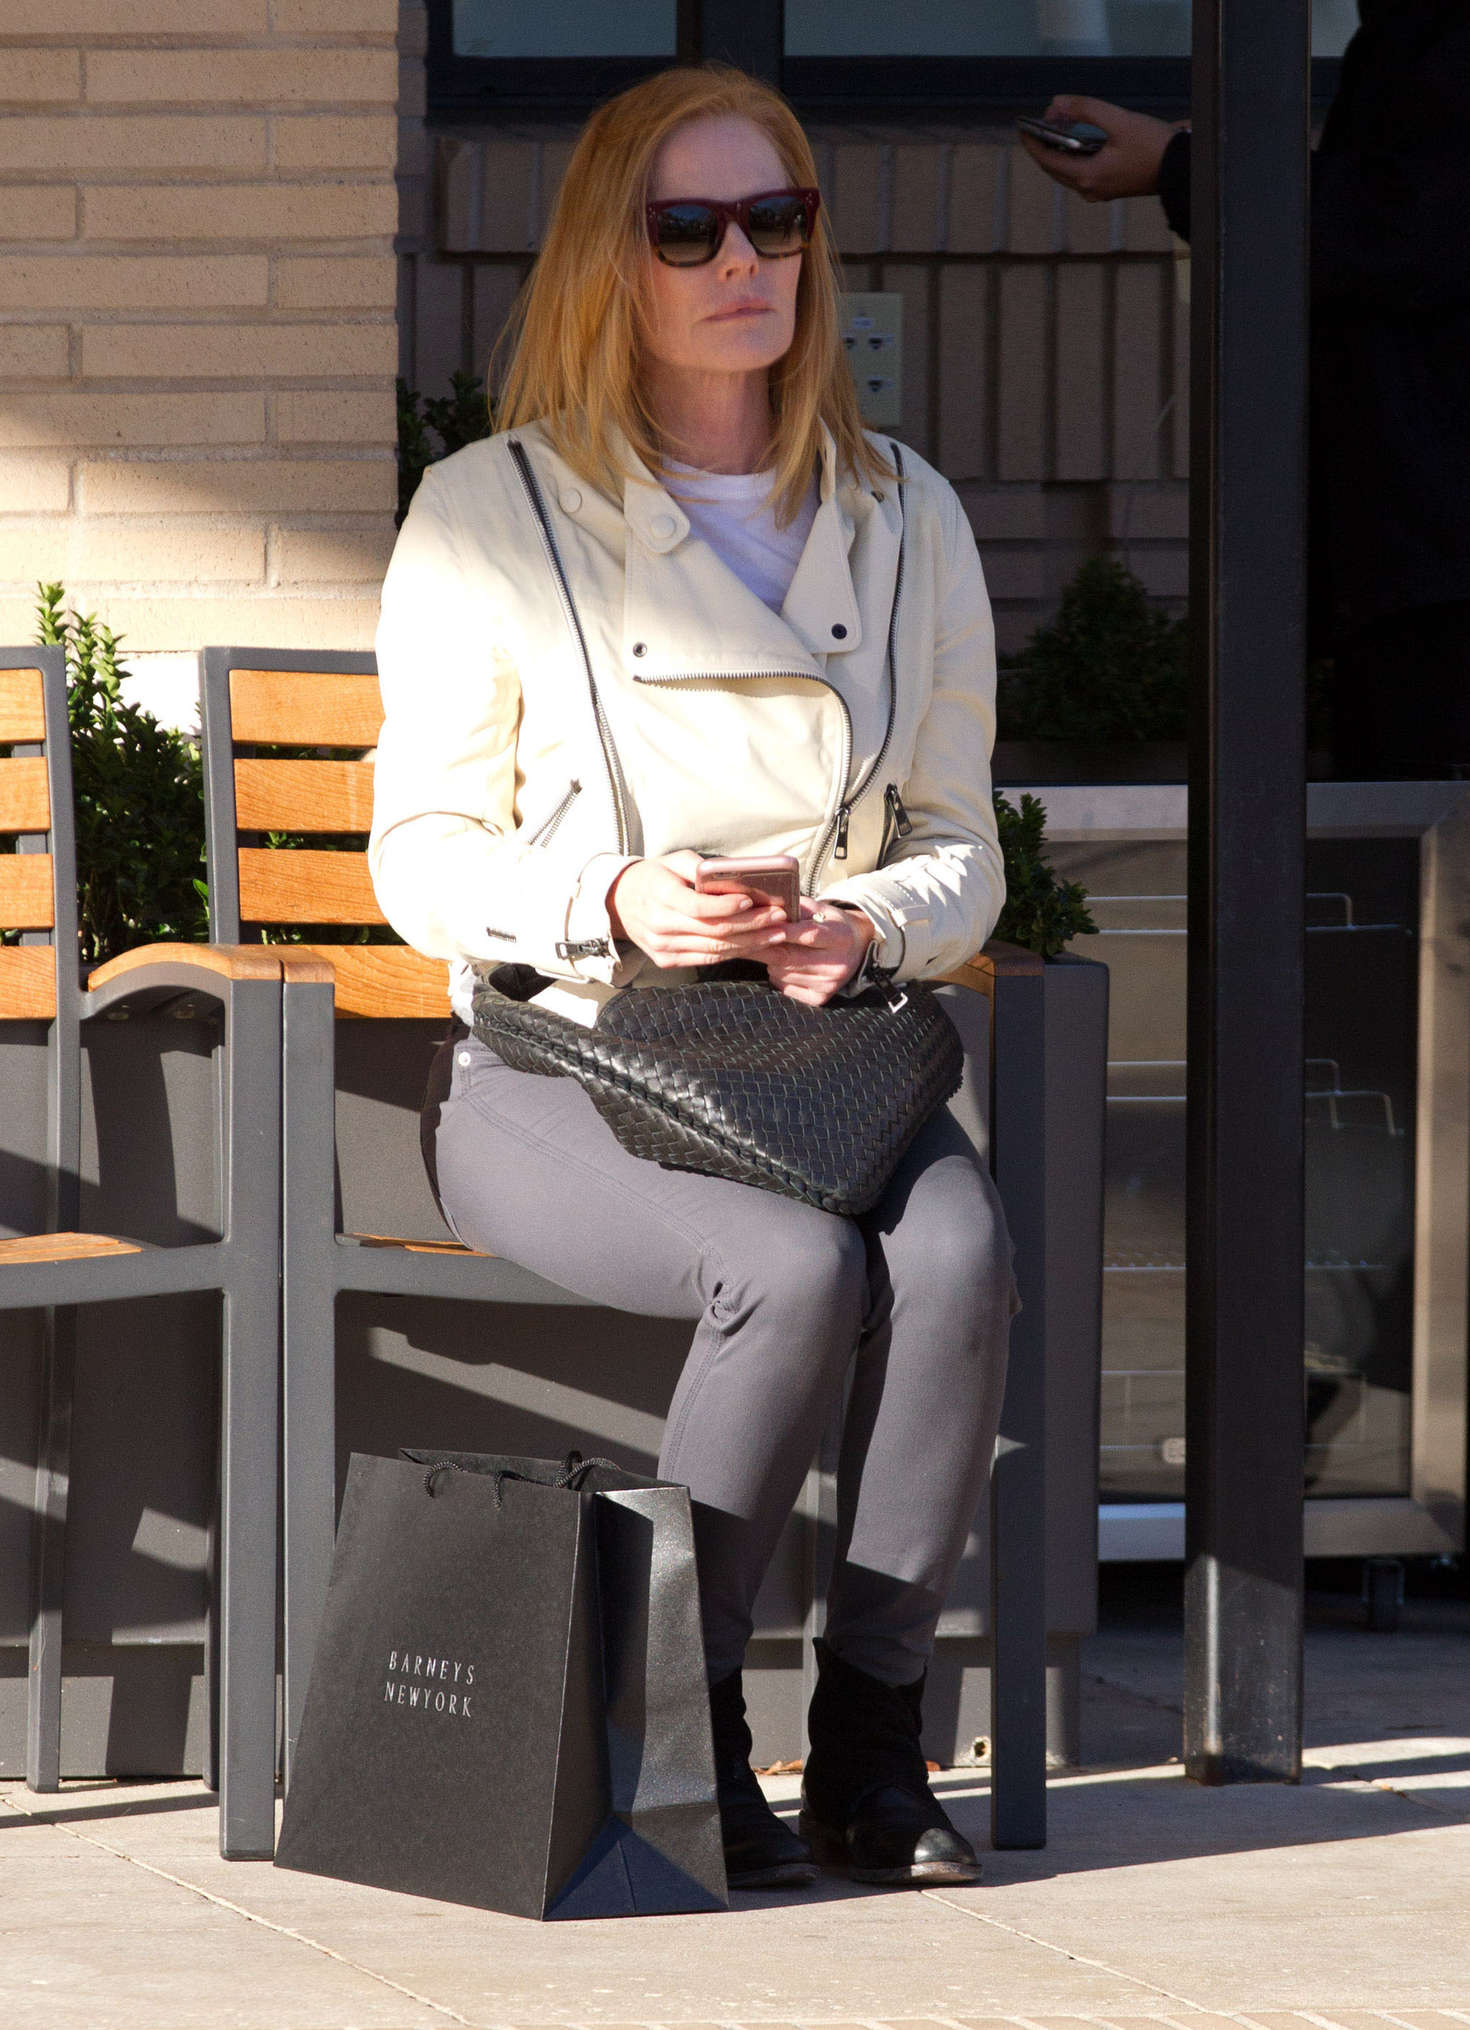 Marg helgenberger casual style shopping at splendid in santa monica new photo